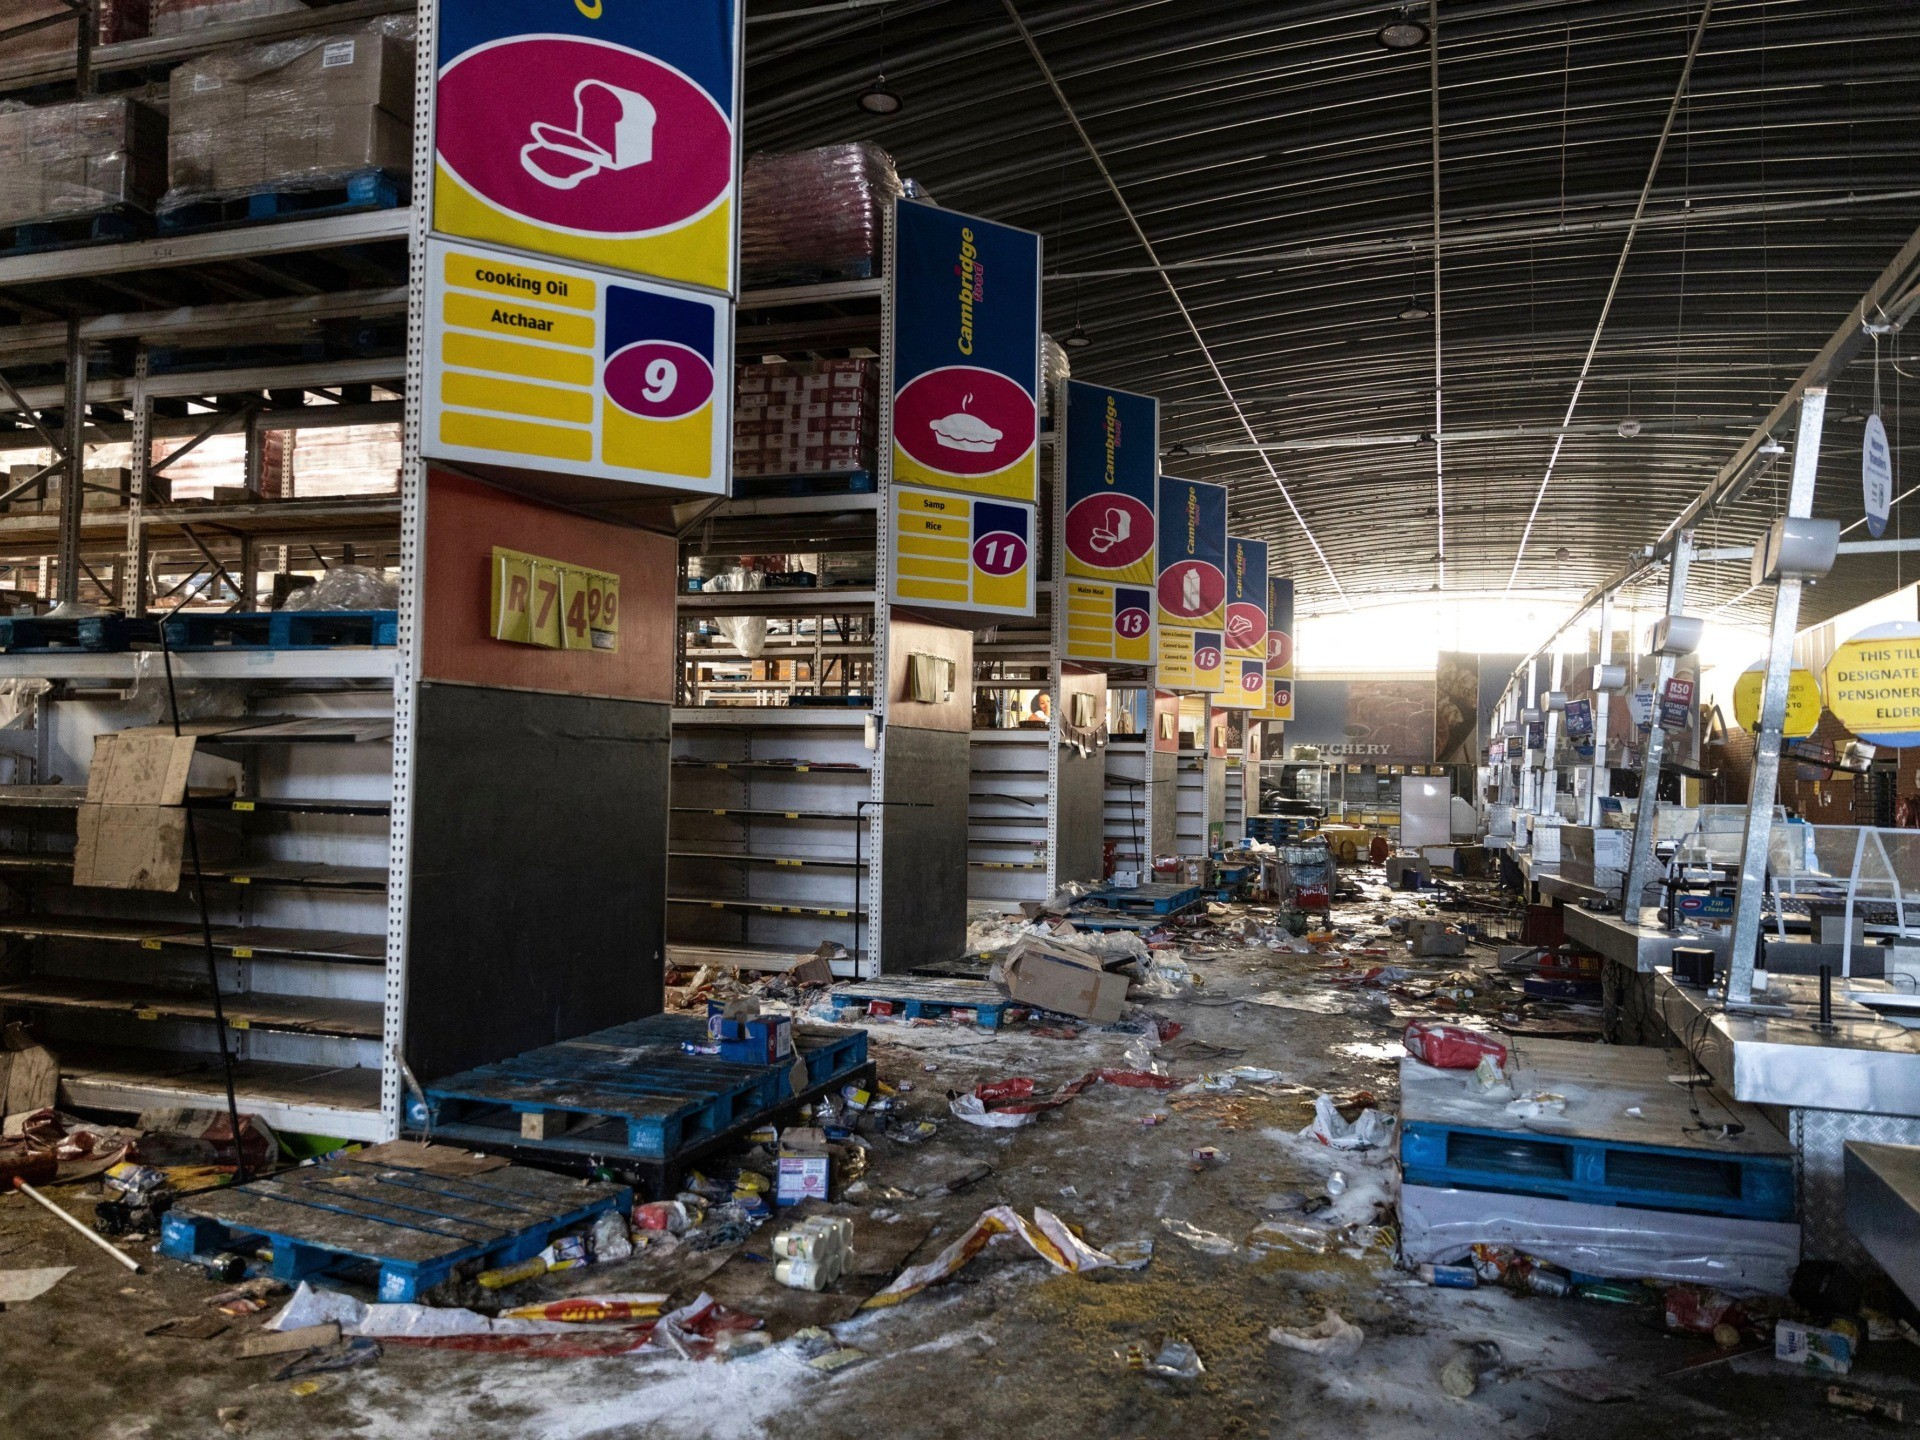 A picture taken in Vosloorus, southeast of Johannesburg, on July 12, 2021 shows the Gold Spot Shopping Centre after being looted. - South Africa said it was deploying troops to two provinces, including Johannesburg, after unrest sparked by the jailing of ex-president Jacob Zuma led to six deaths and widespread looting. Overwhelmed police are facing mobs who have ransacked stores. Six people have died, some with gunshot wounds, and 219 people have been arrested, according to a police tally issued before the army deployed. (Photo by GUILLEM SARTORIO / AFP) (Photo by GUILLEM SARTORIO/AFP via Getty Images)